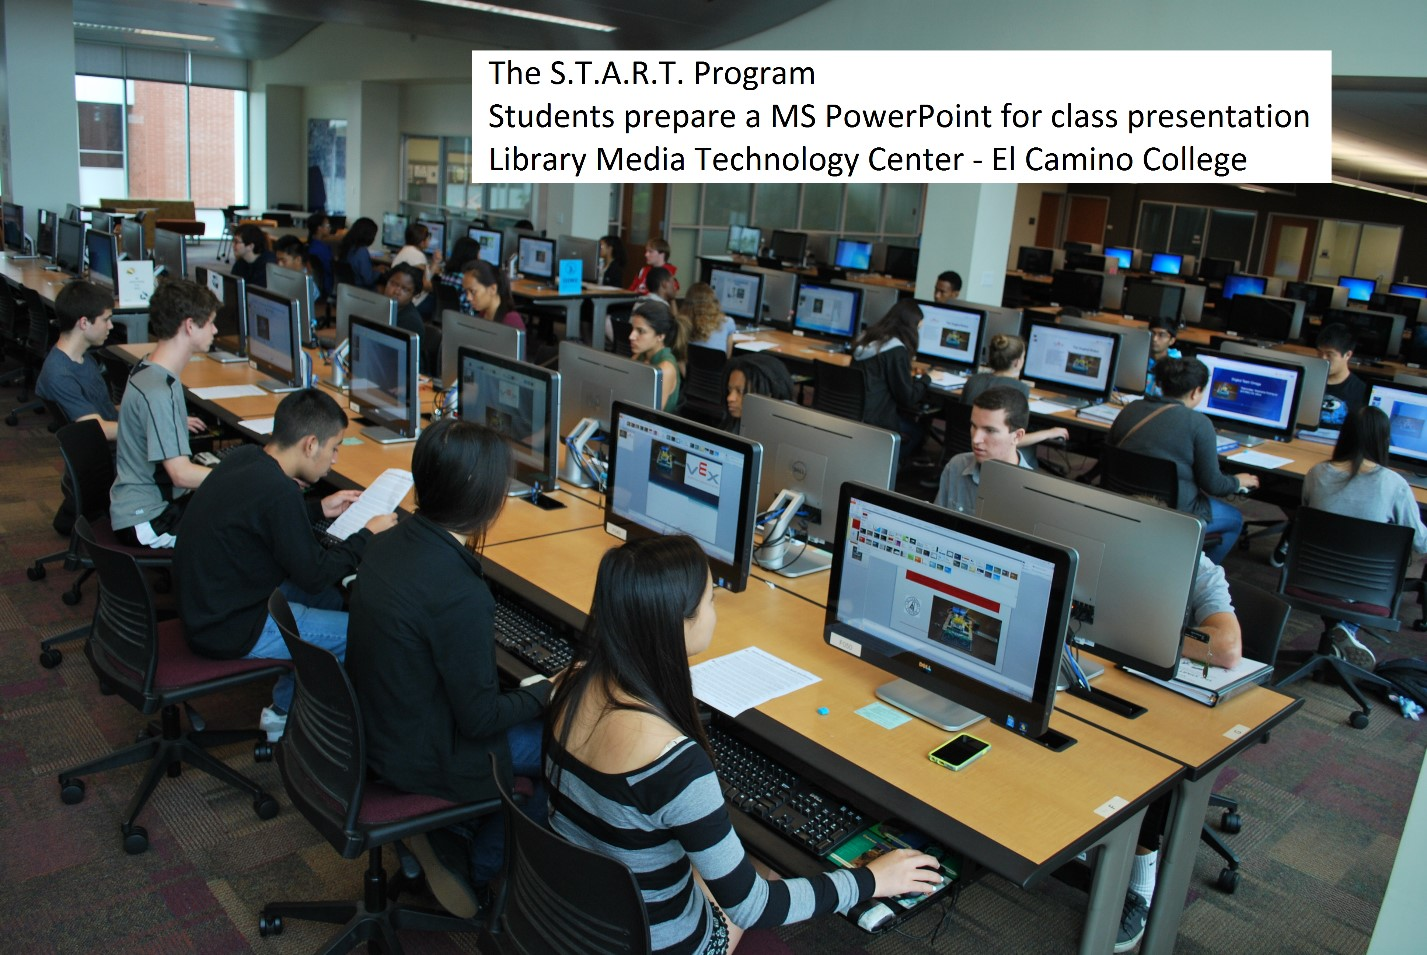 START Program 2015 - students create a MS PowerPoint